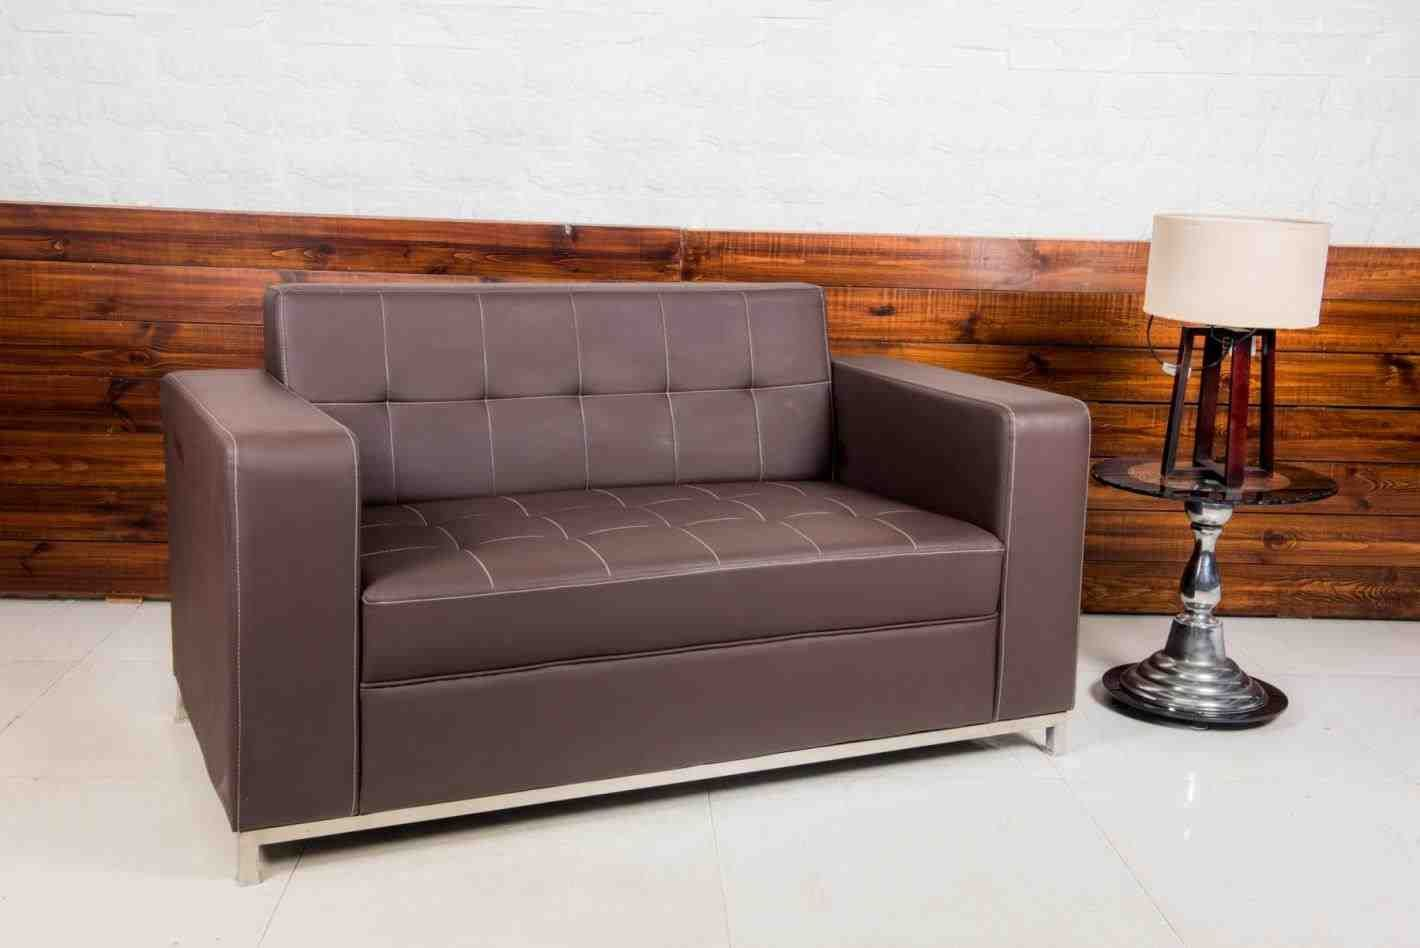 Sofa For Sale In Yanbu Buy Furniture Online Pay Monthly Full Size Of Sofa Furniture Sale